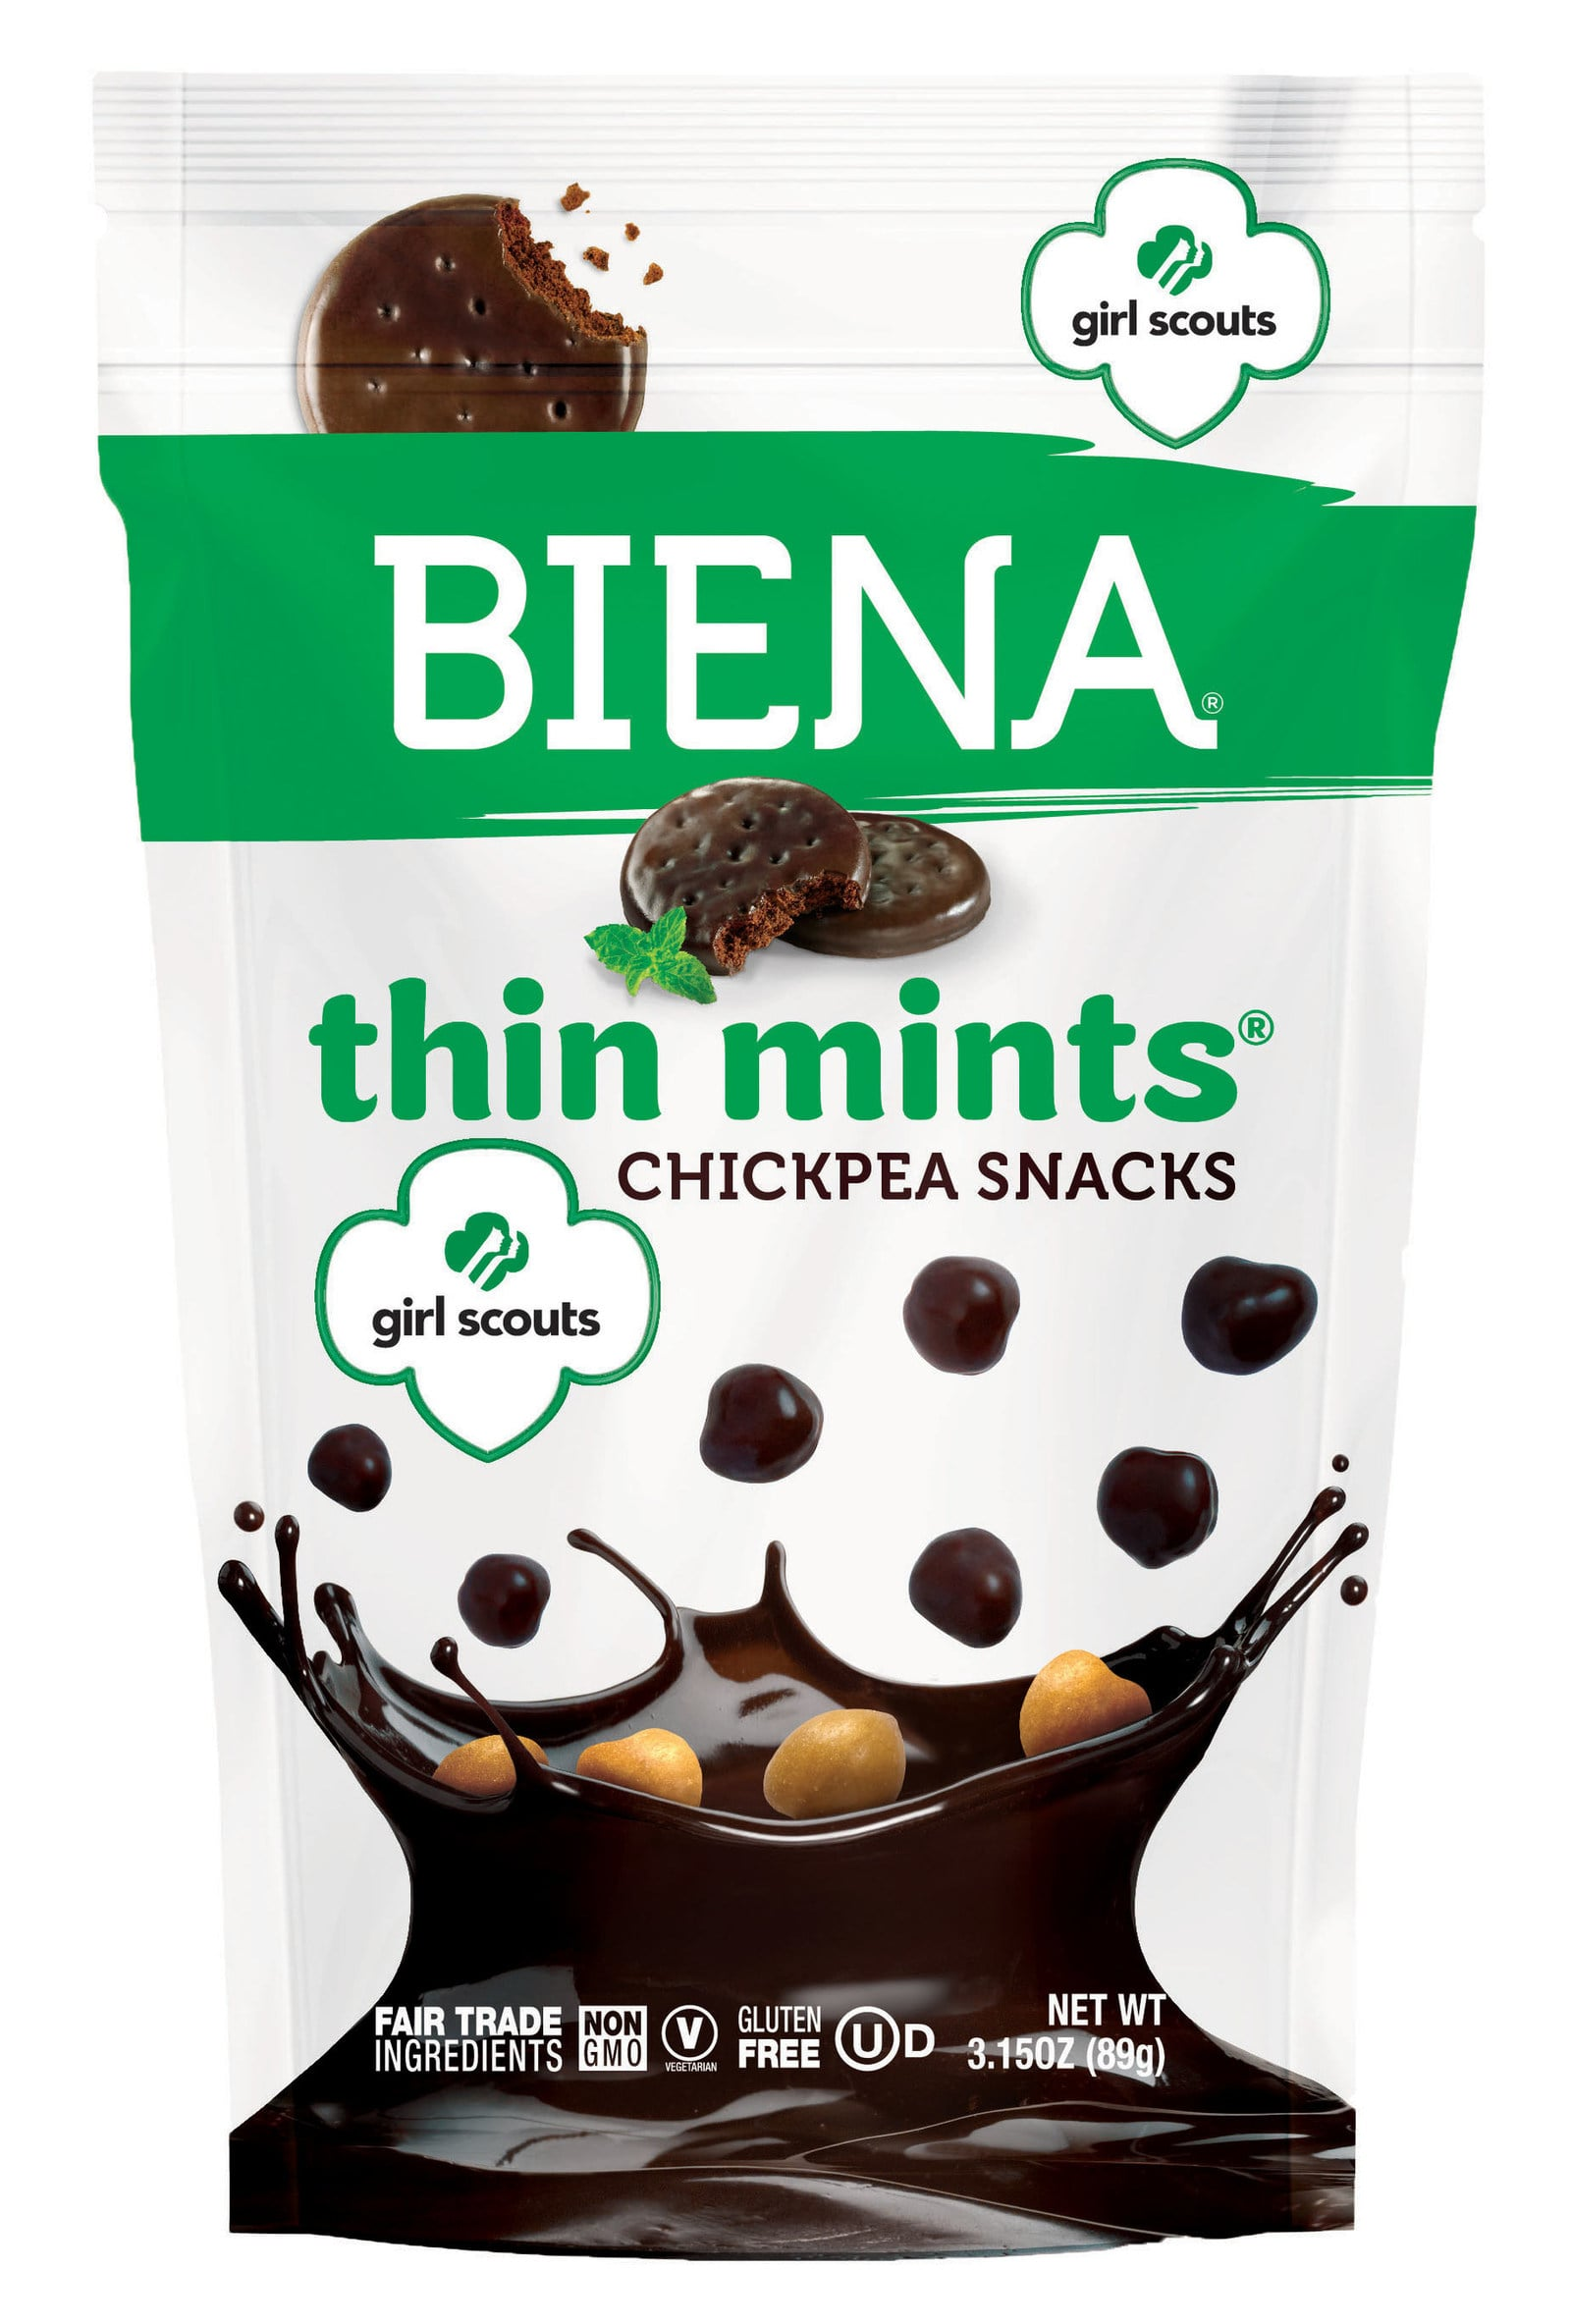 Biena fans will soon be able to get their sweet fix with new Biena Thin Mints Chickpea Snacks, launching exclusively at Whole Foods in June 2018. Biena has submerged its signature Sea Salt Chickpeas into delectable Thin Mints and Fair Trade dark chocolate, offering the timeless taste of Thin mints cookies, all for 130 calories and 4 grams of protein and fiber per serving. (PRNewsfoto/Biena Snacks)